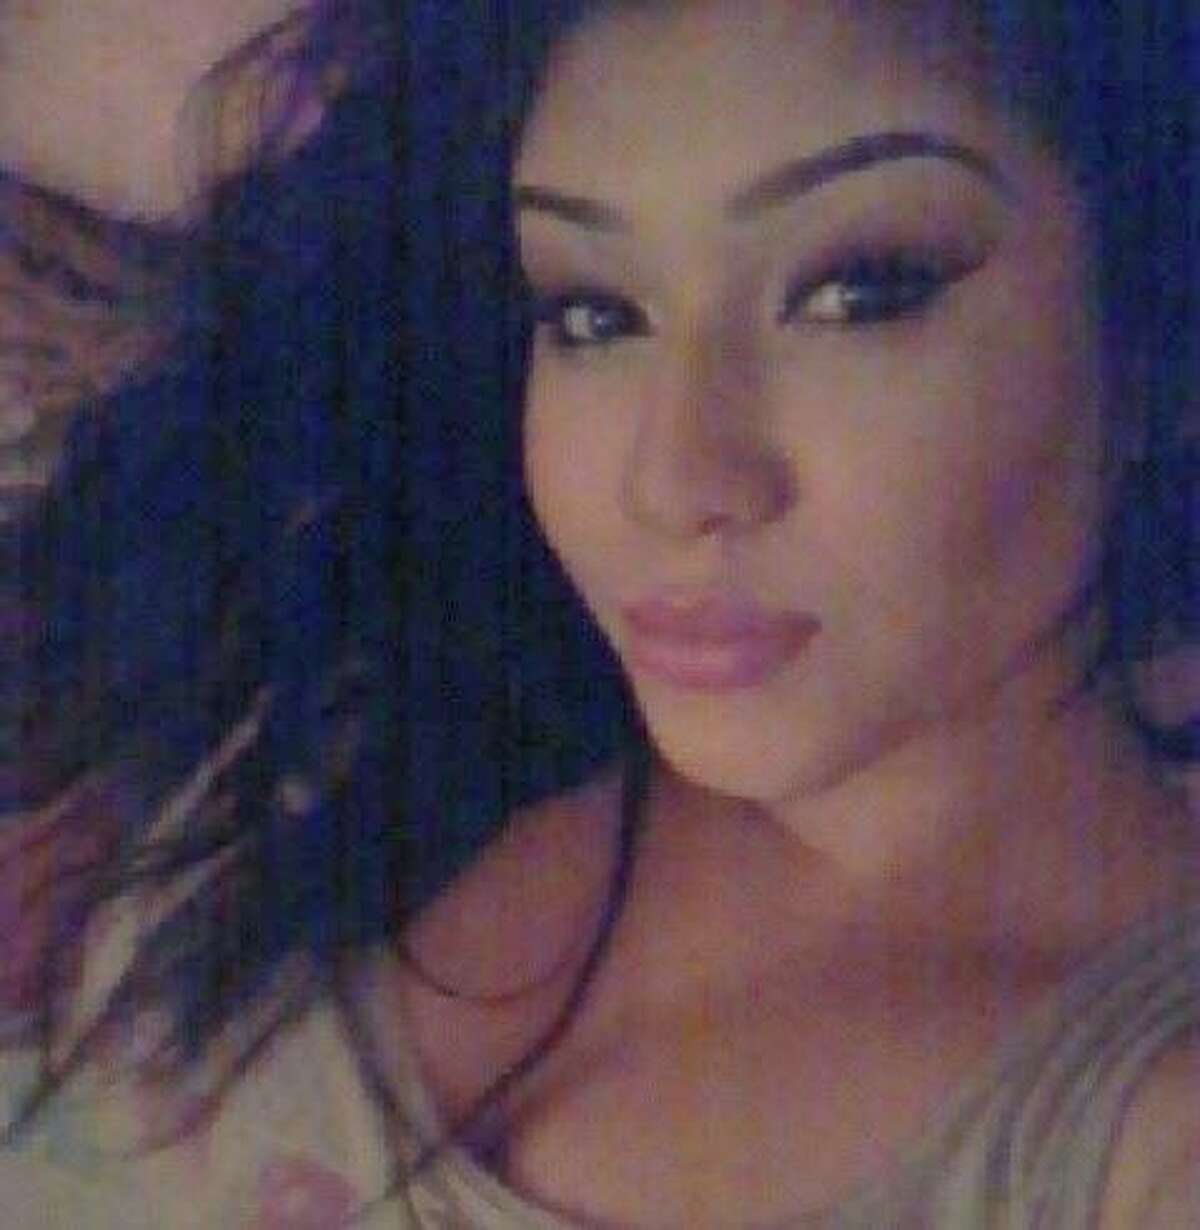 A woman whose body was found in a burning car in Fort Bend County County on Jan. 11, 2017 has been identified as 21-year-old Lorraine Diaz.